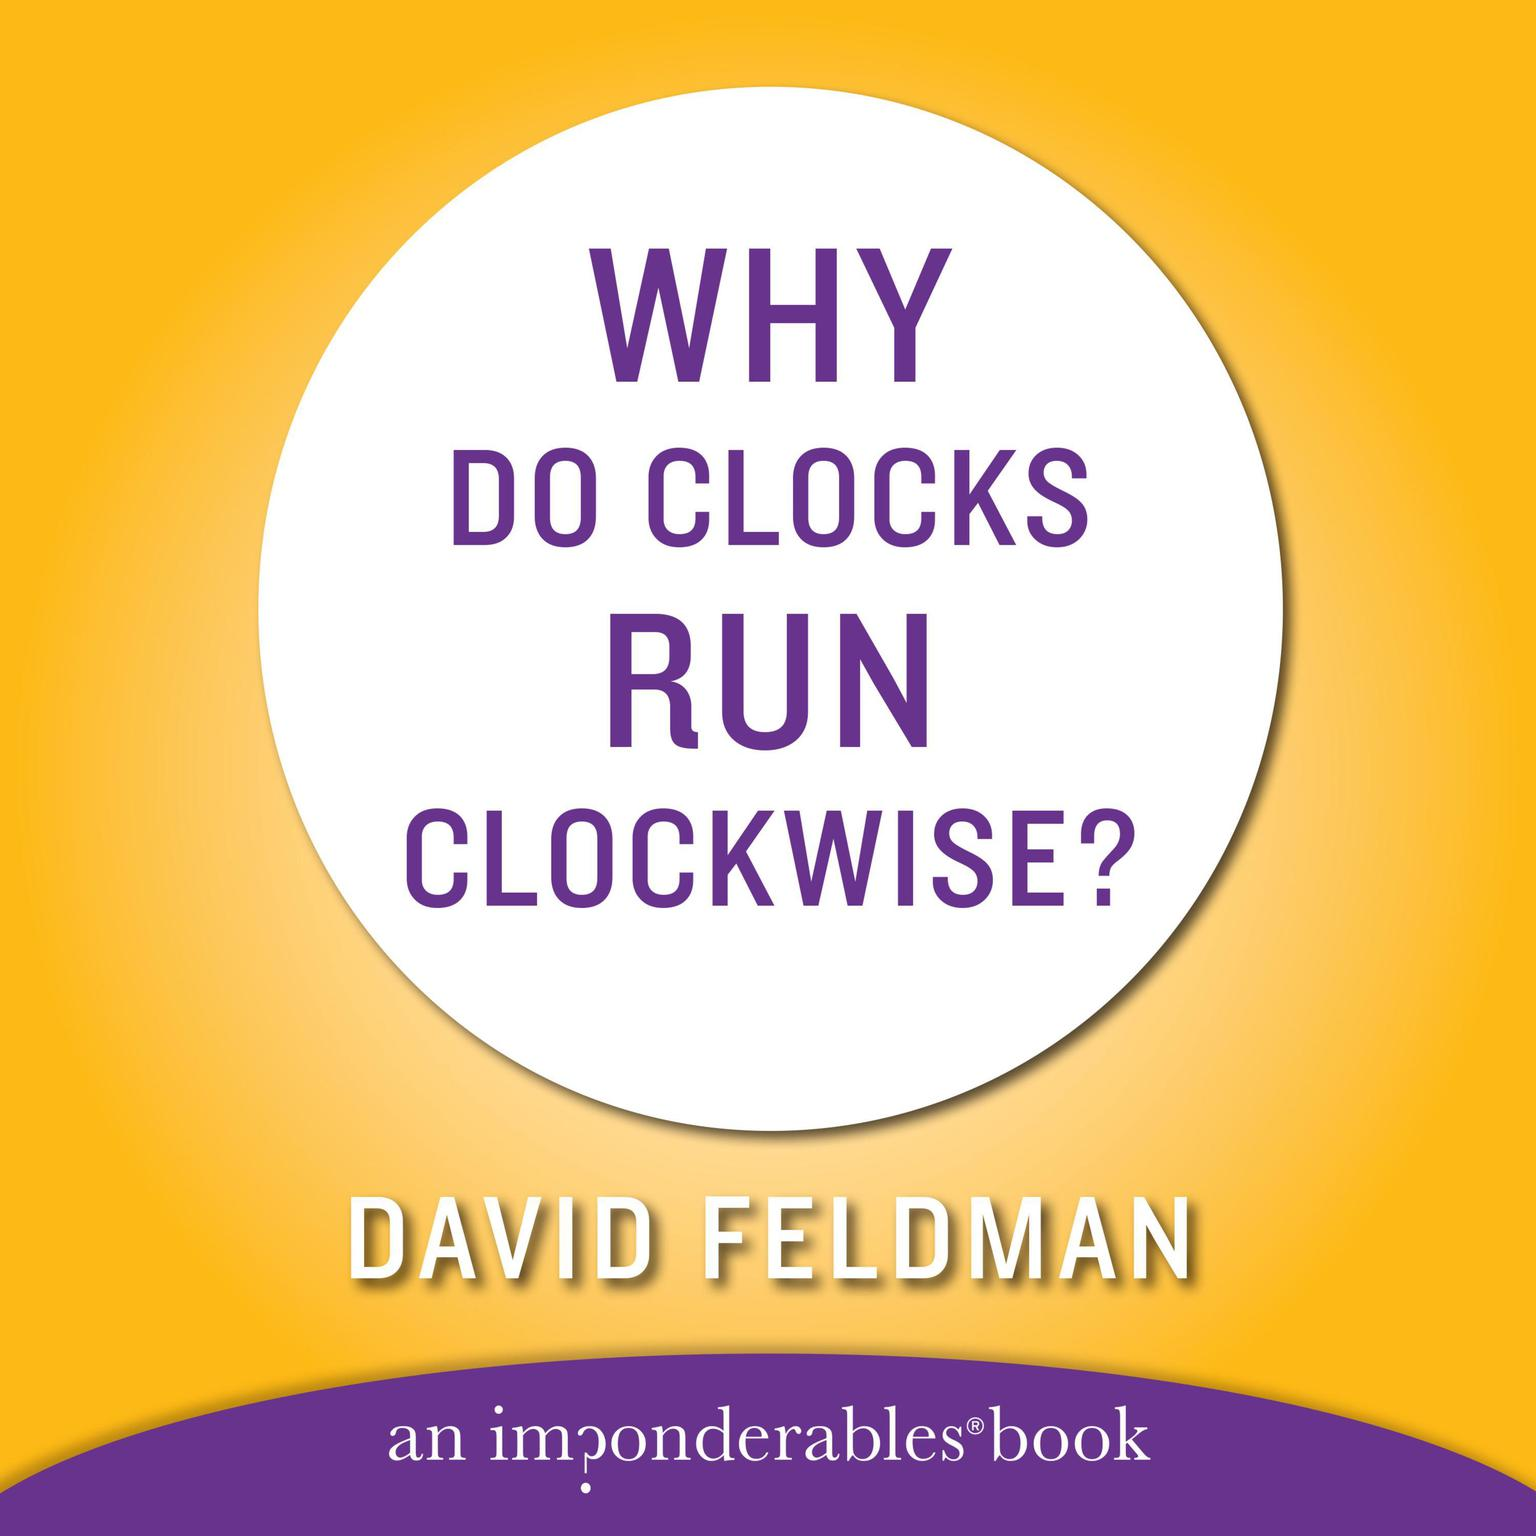 Printable WHY DO CLOCKS RUN CLOCKWISE: An Imponderables Book Audiobook Cover Art